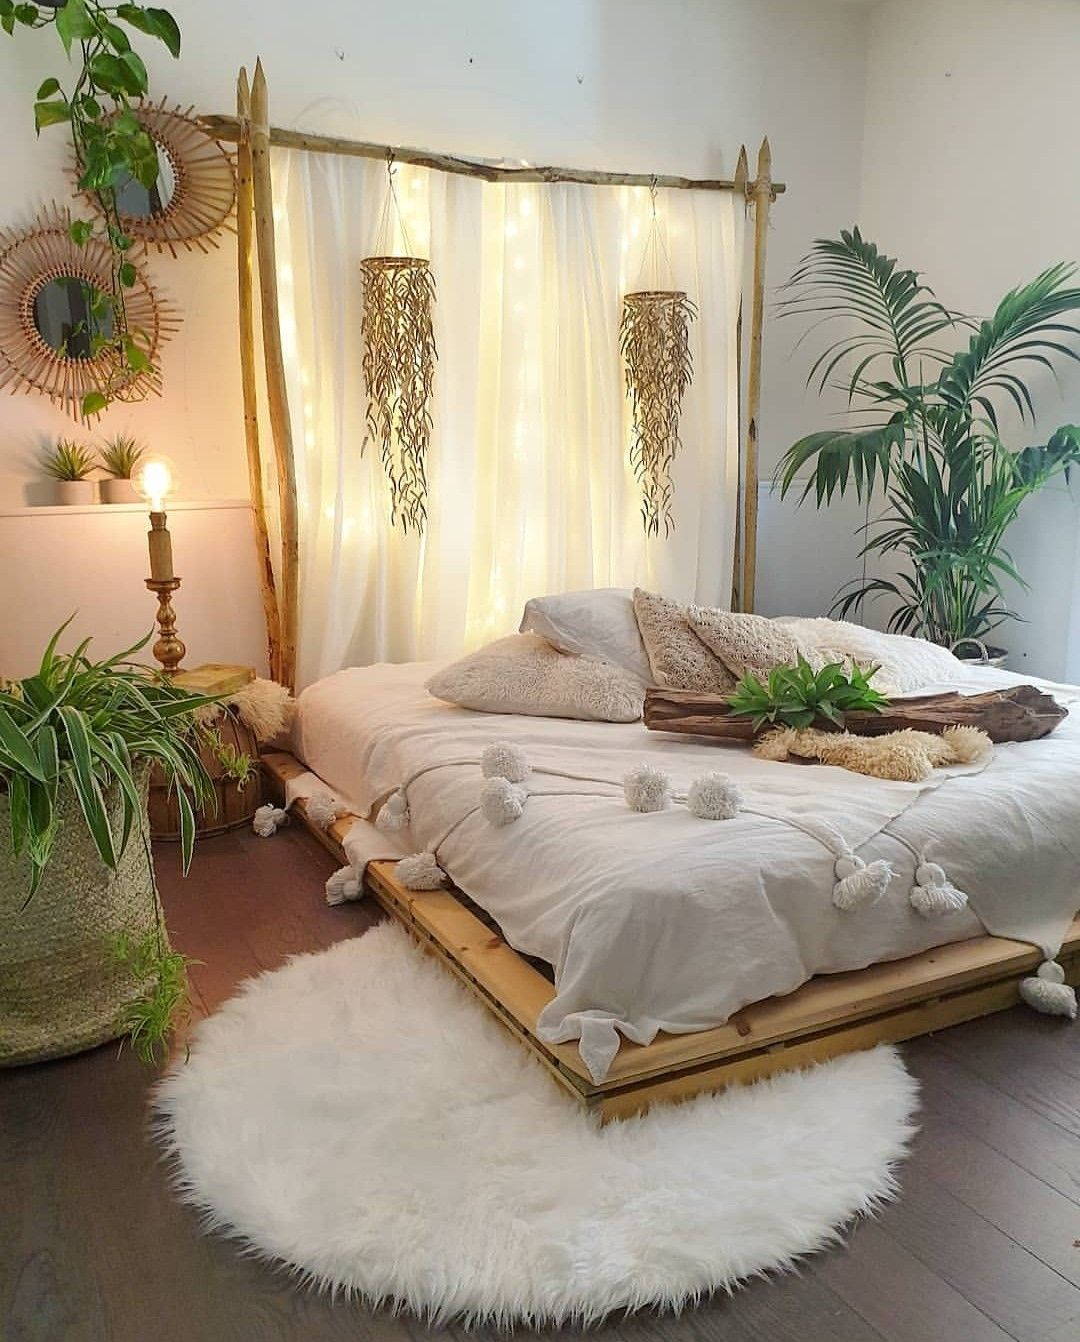 Pin By Bohoasis On Boho Tapestry & Bedding